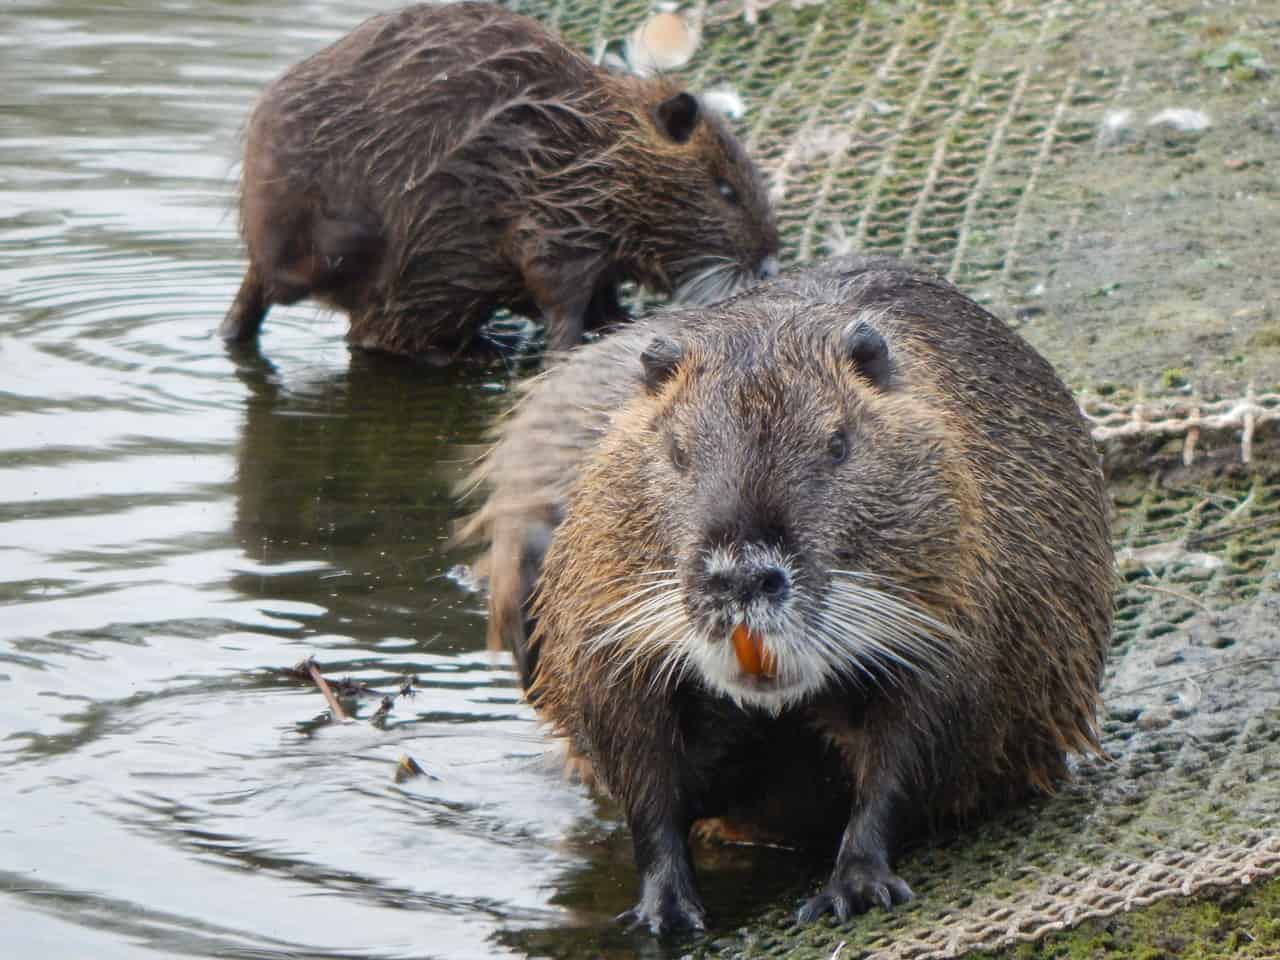 How big is a Muskrat?